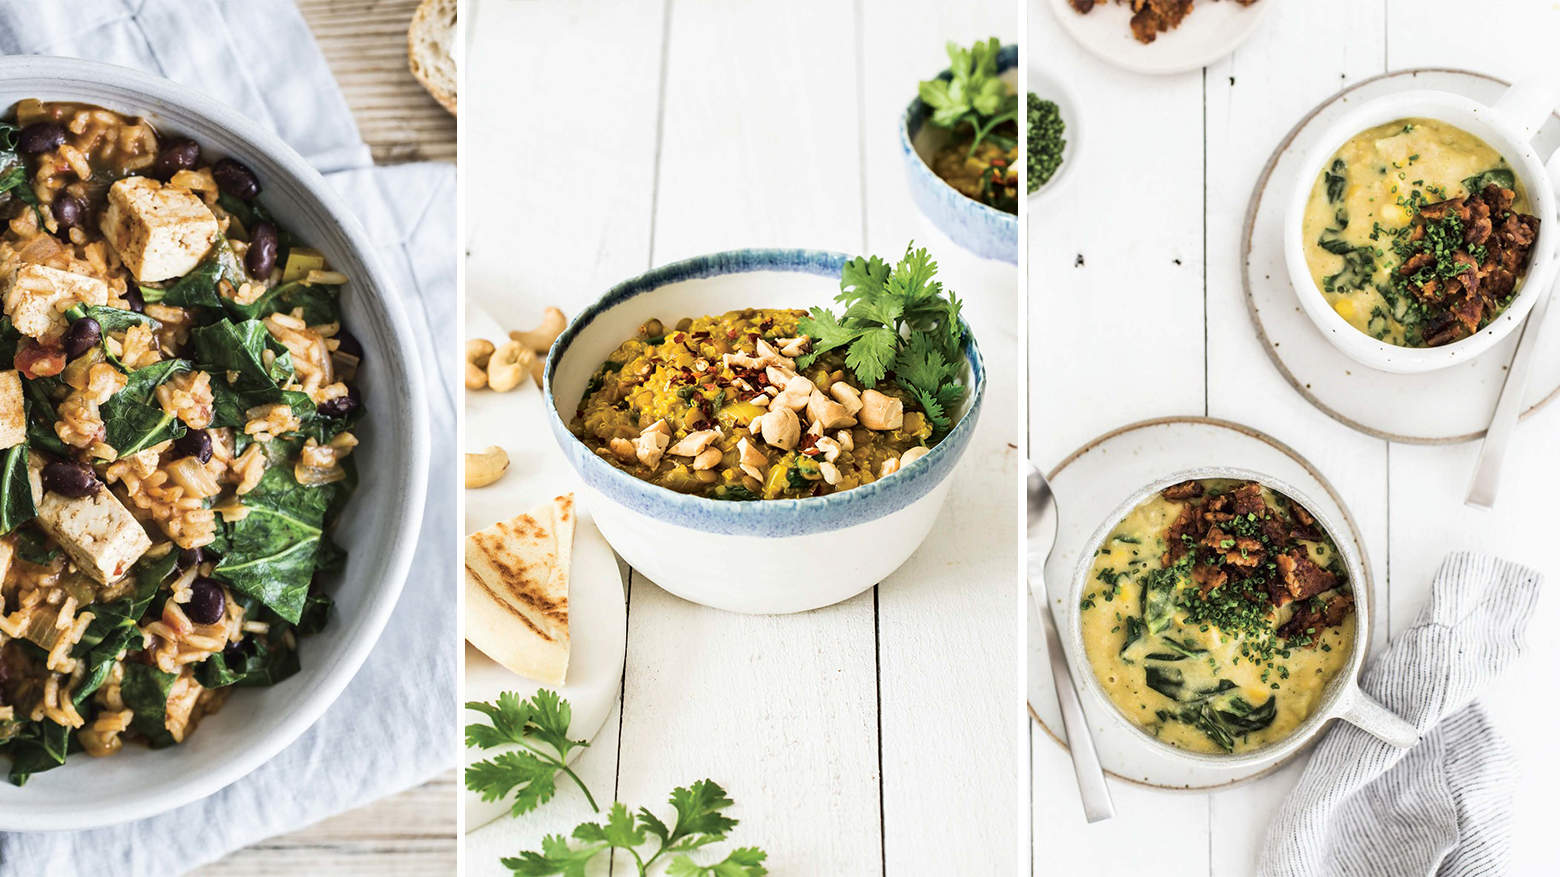 3 Hearty One-Dish Vegan Recipes a Nutritionist Makes for Dinner